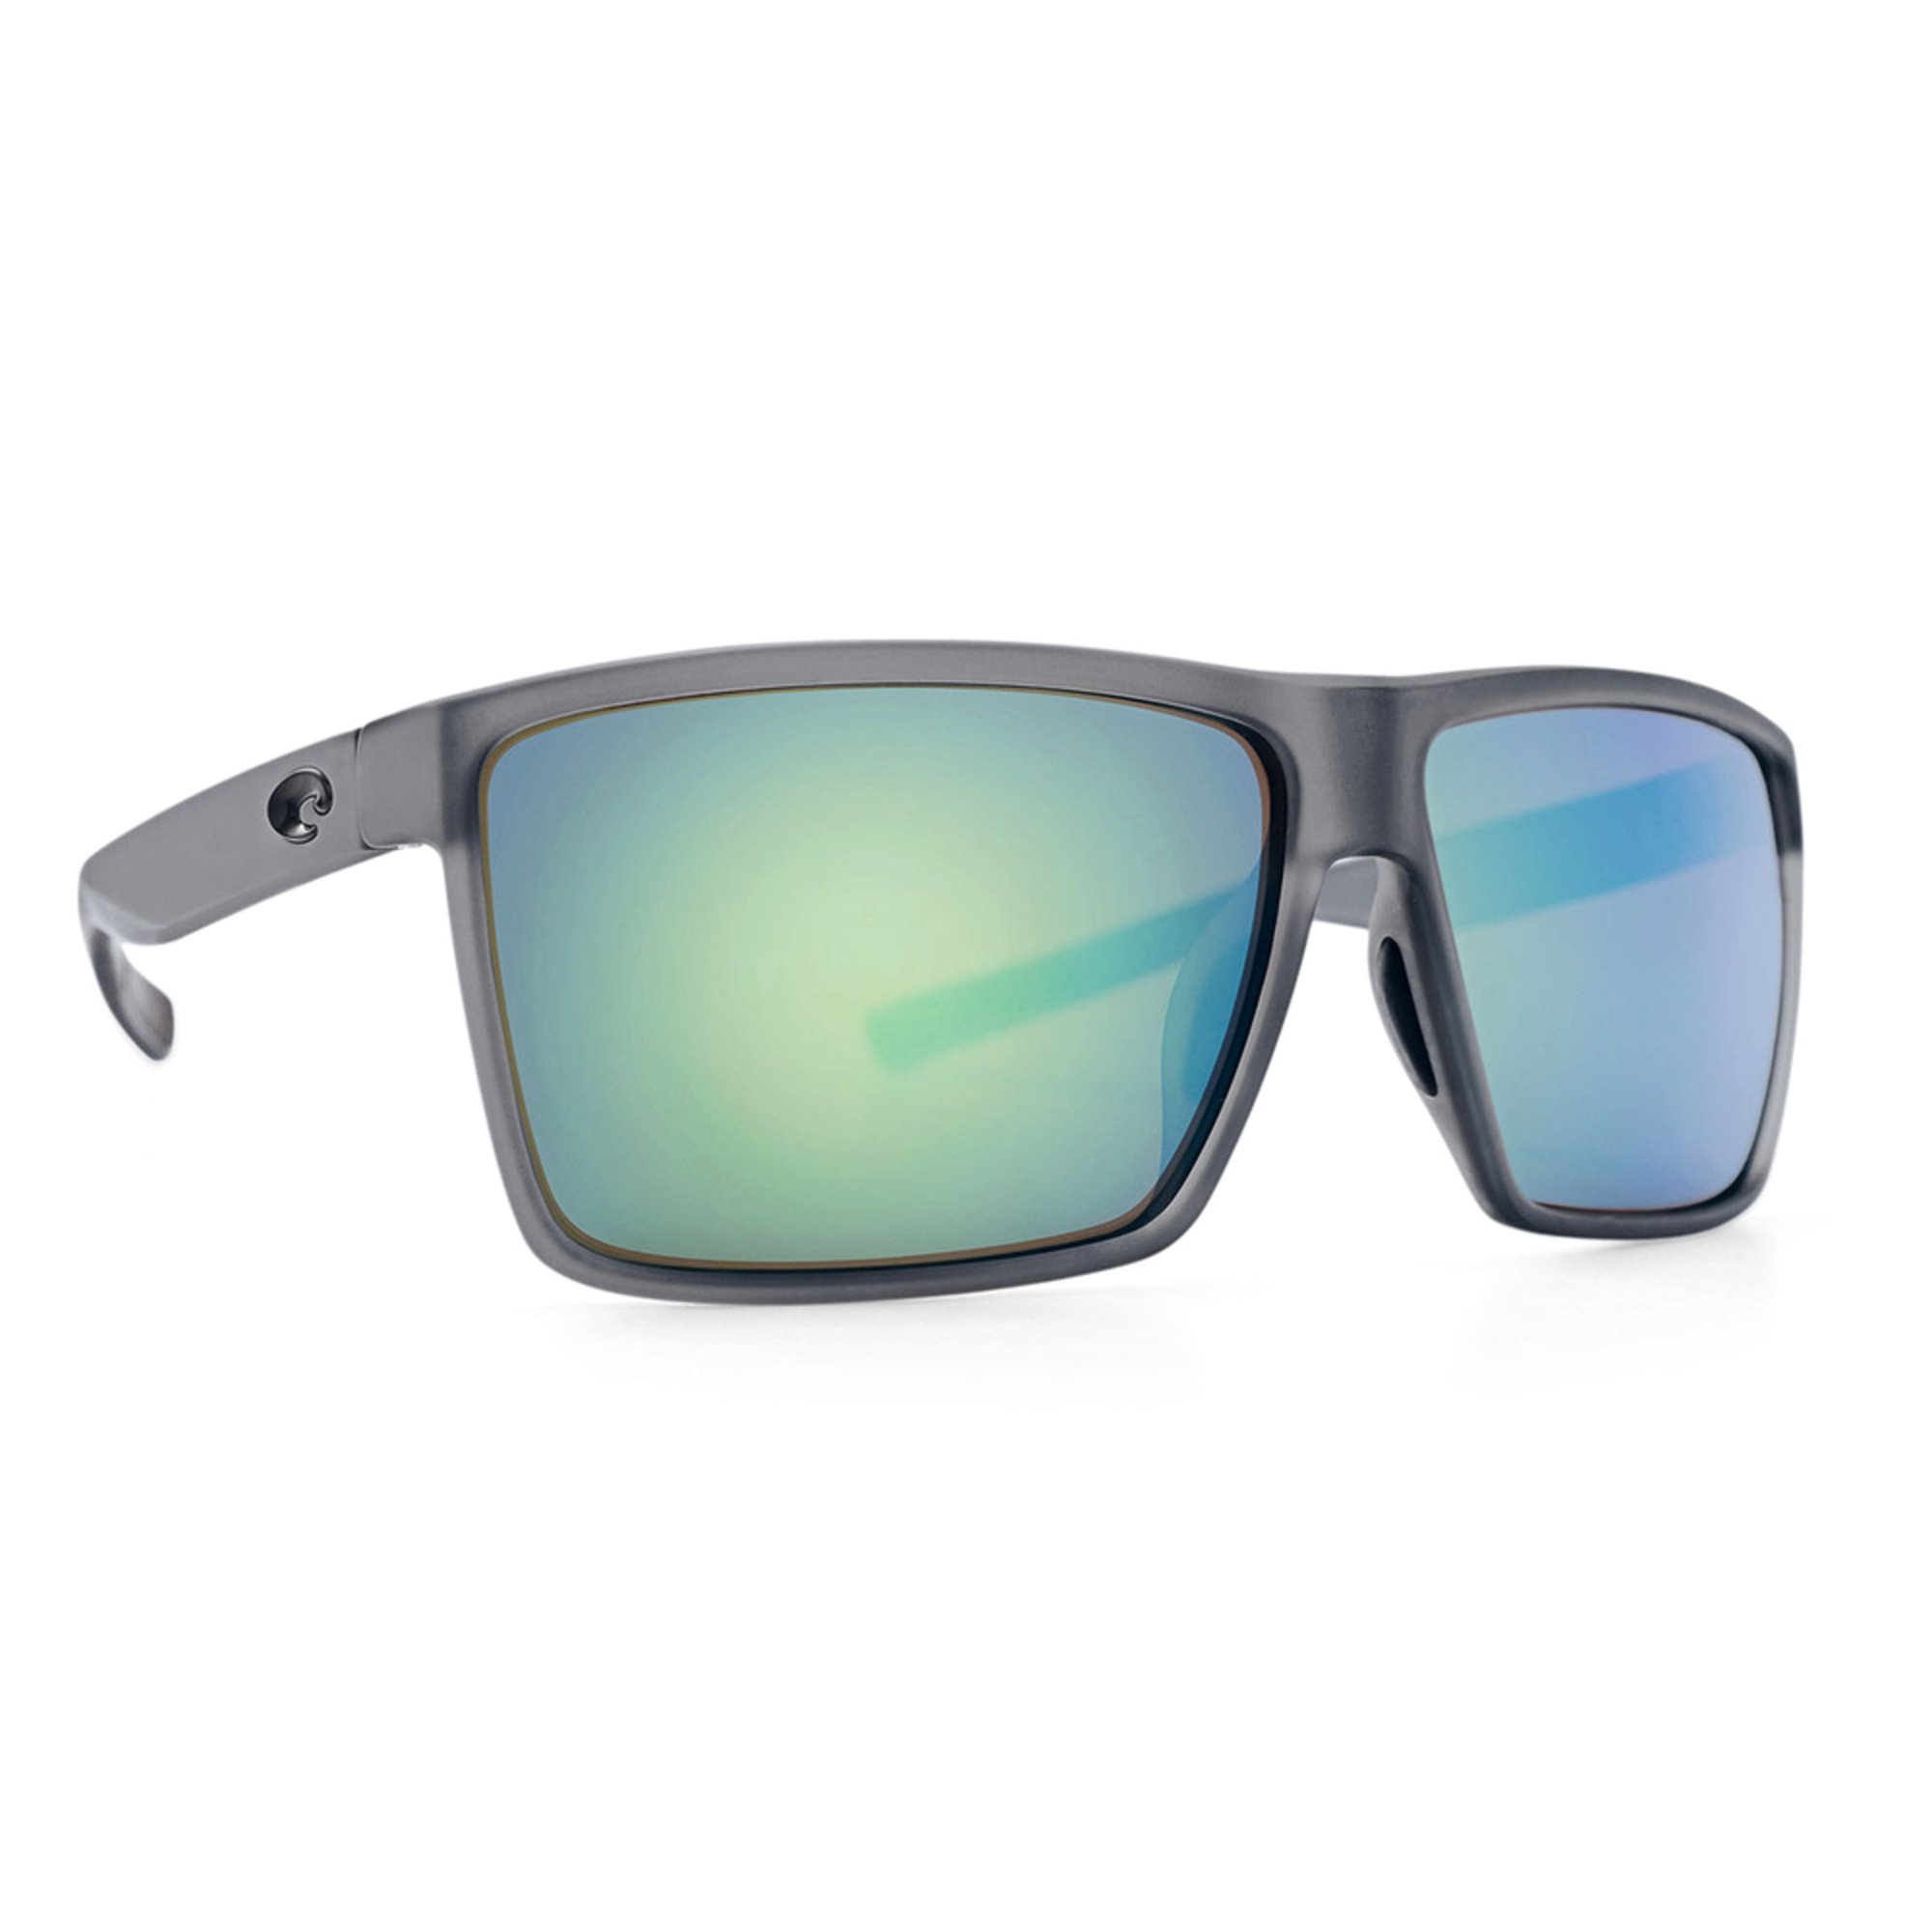 a72836c91ce42 Costa del Mar. Costa Del Mar Men s Polarized Rincon Sunglasses